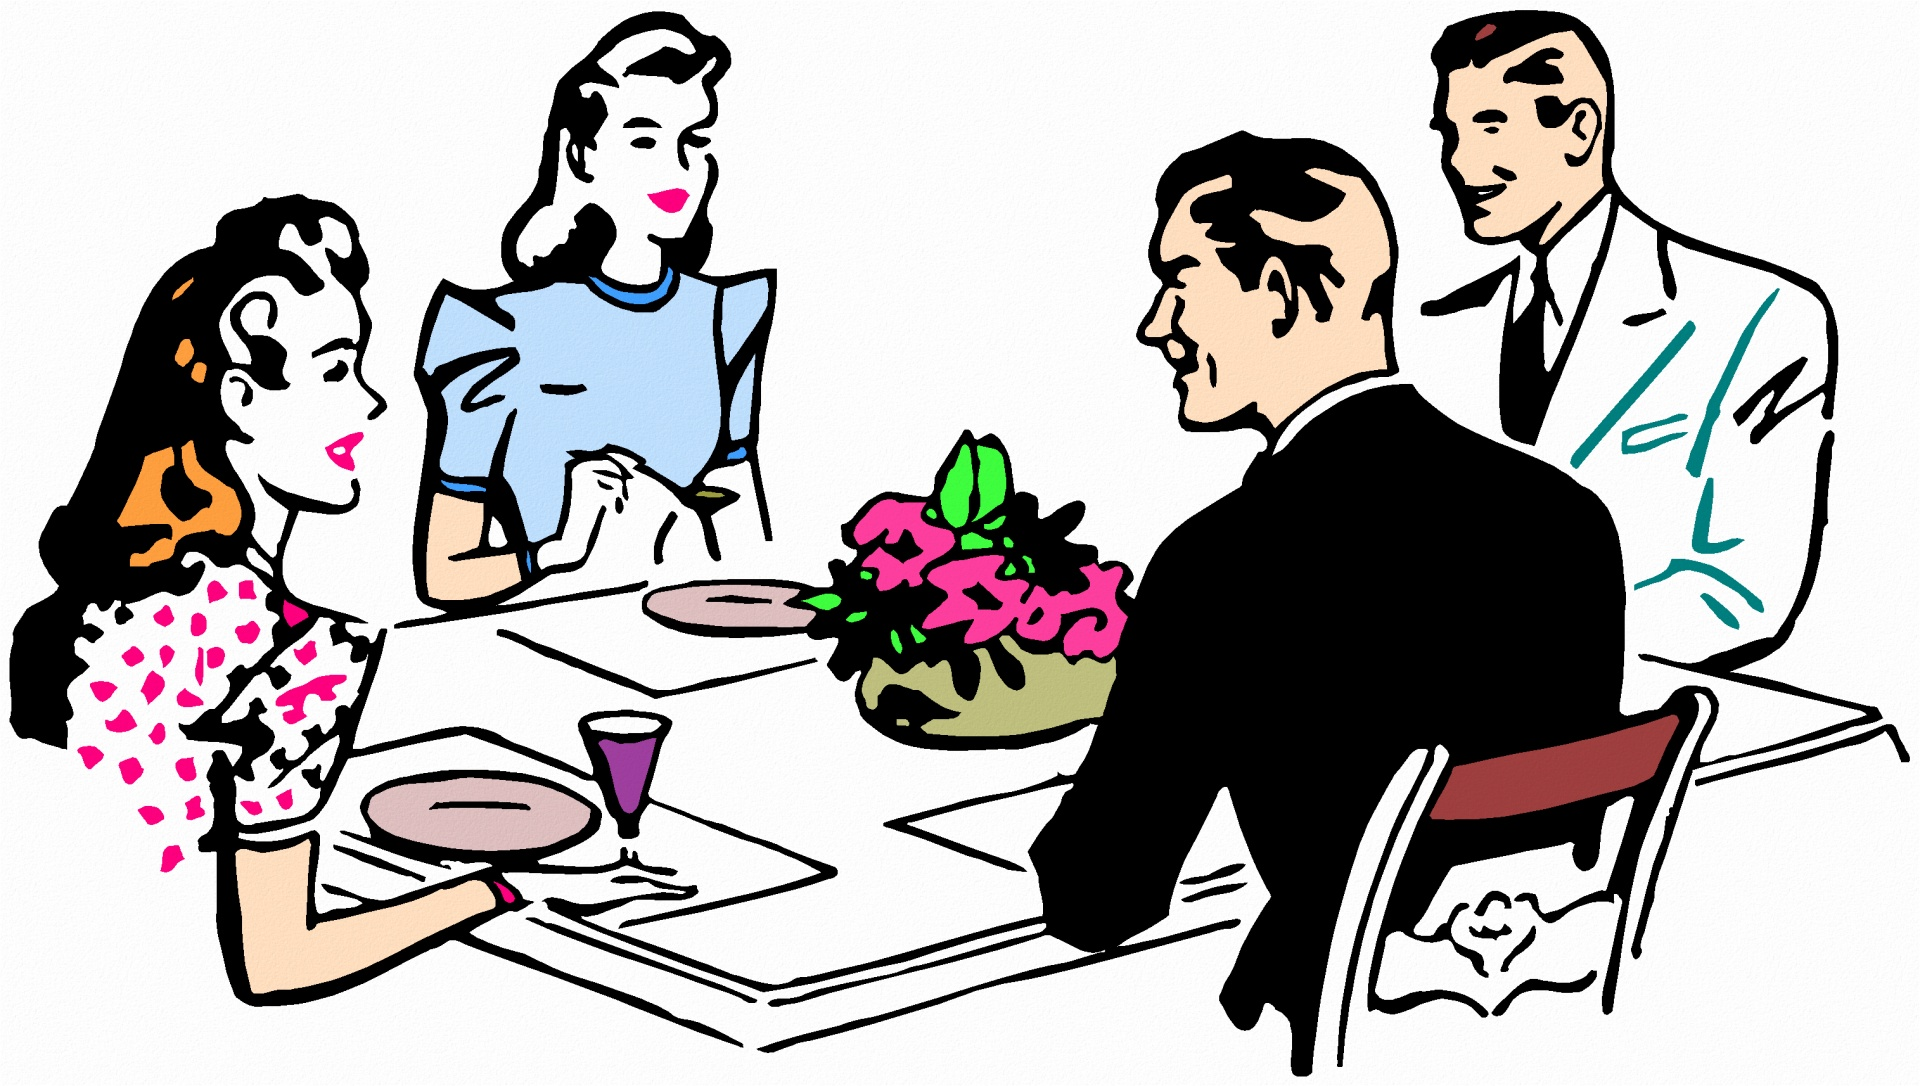 thanksgiving dinner clipart at getdrawings com free for personal rh getdrawings com family dinner clipart free family eating dinner clipart black and white